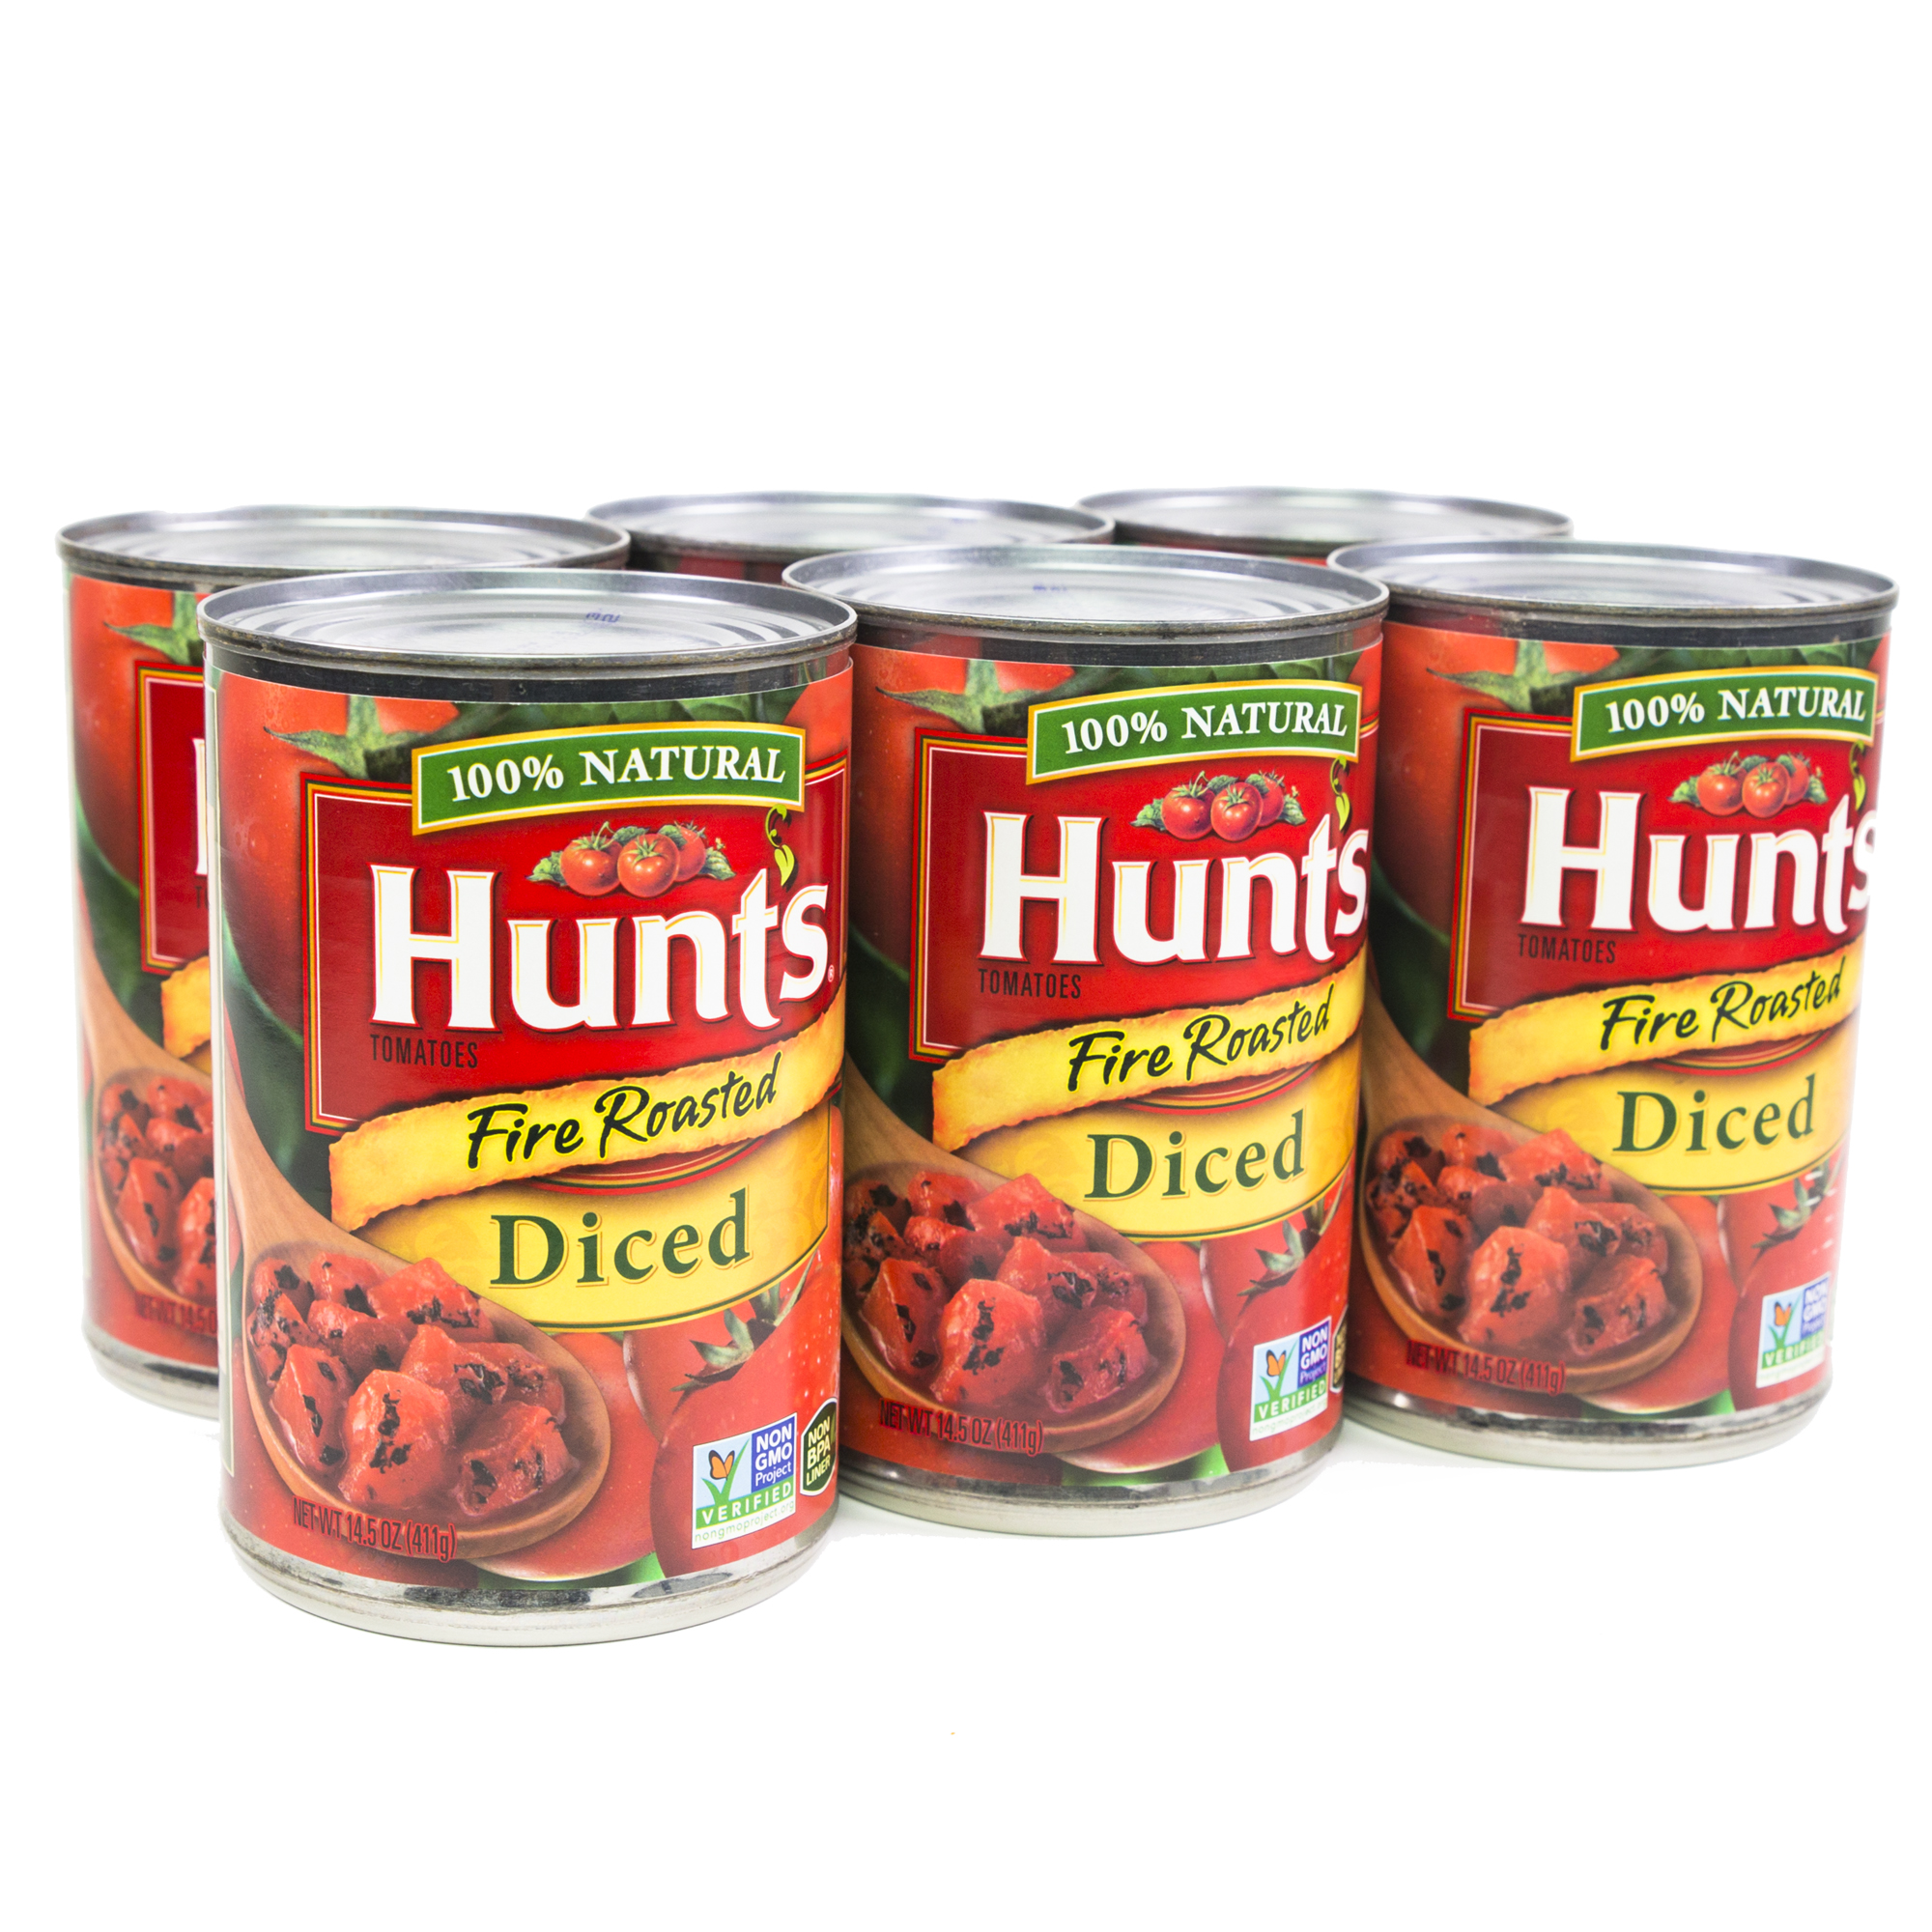 Hunt's Fire Roasted Diced Tomatoes, 14.5 Oz., 6-count